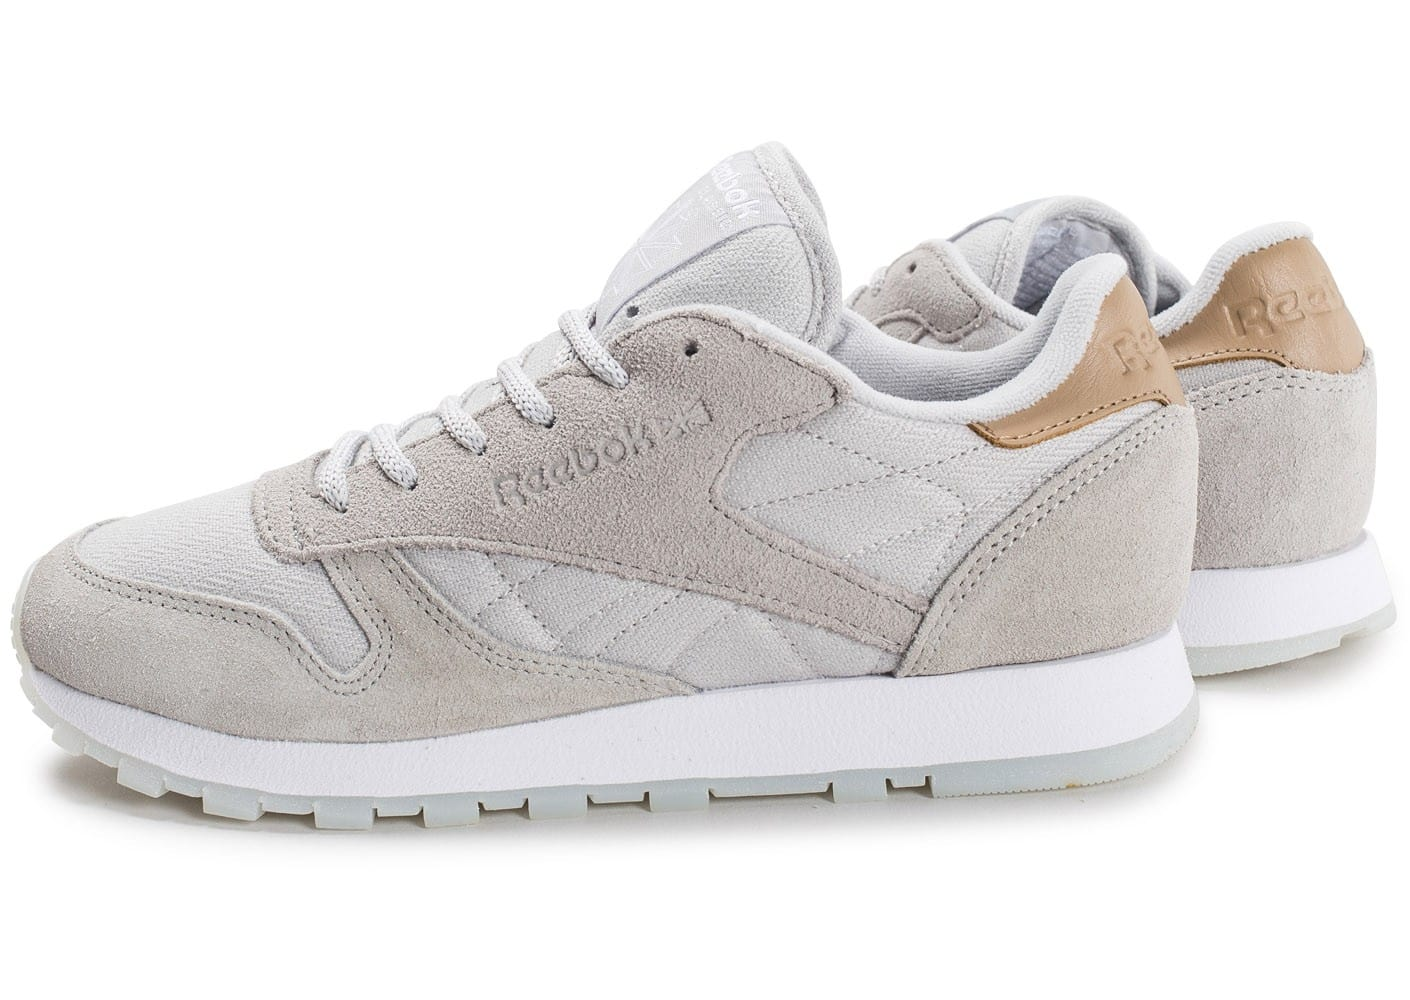 info for 9e3b4 aa5b8 Baskets Sea Reebok Classic Leather Chaussures Femme Grise Worn p4wv4